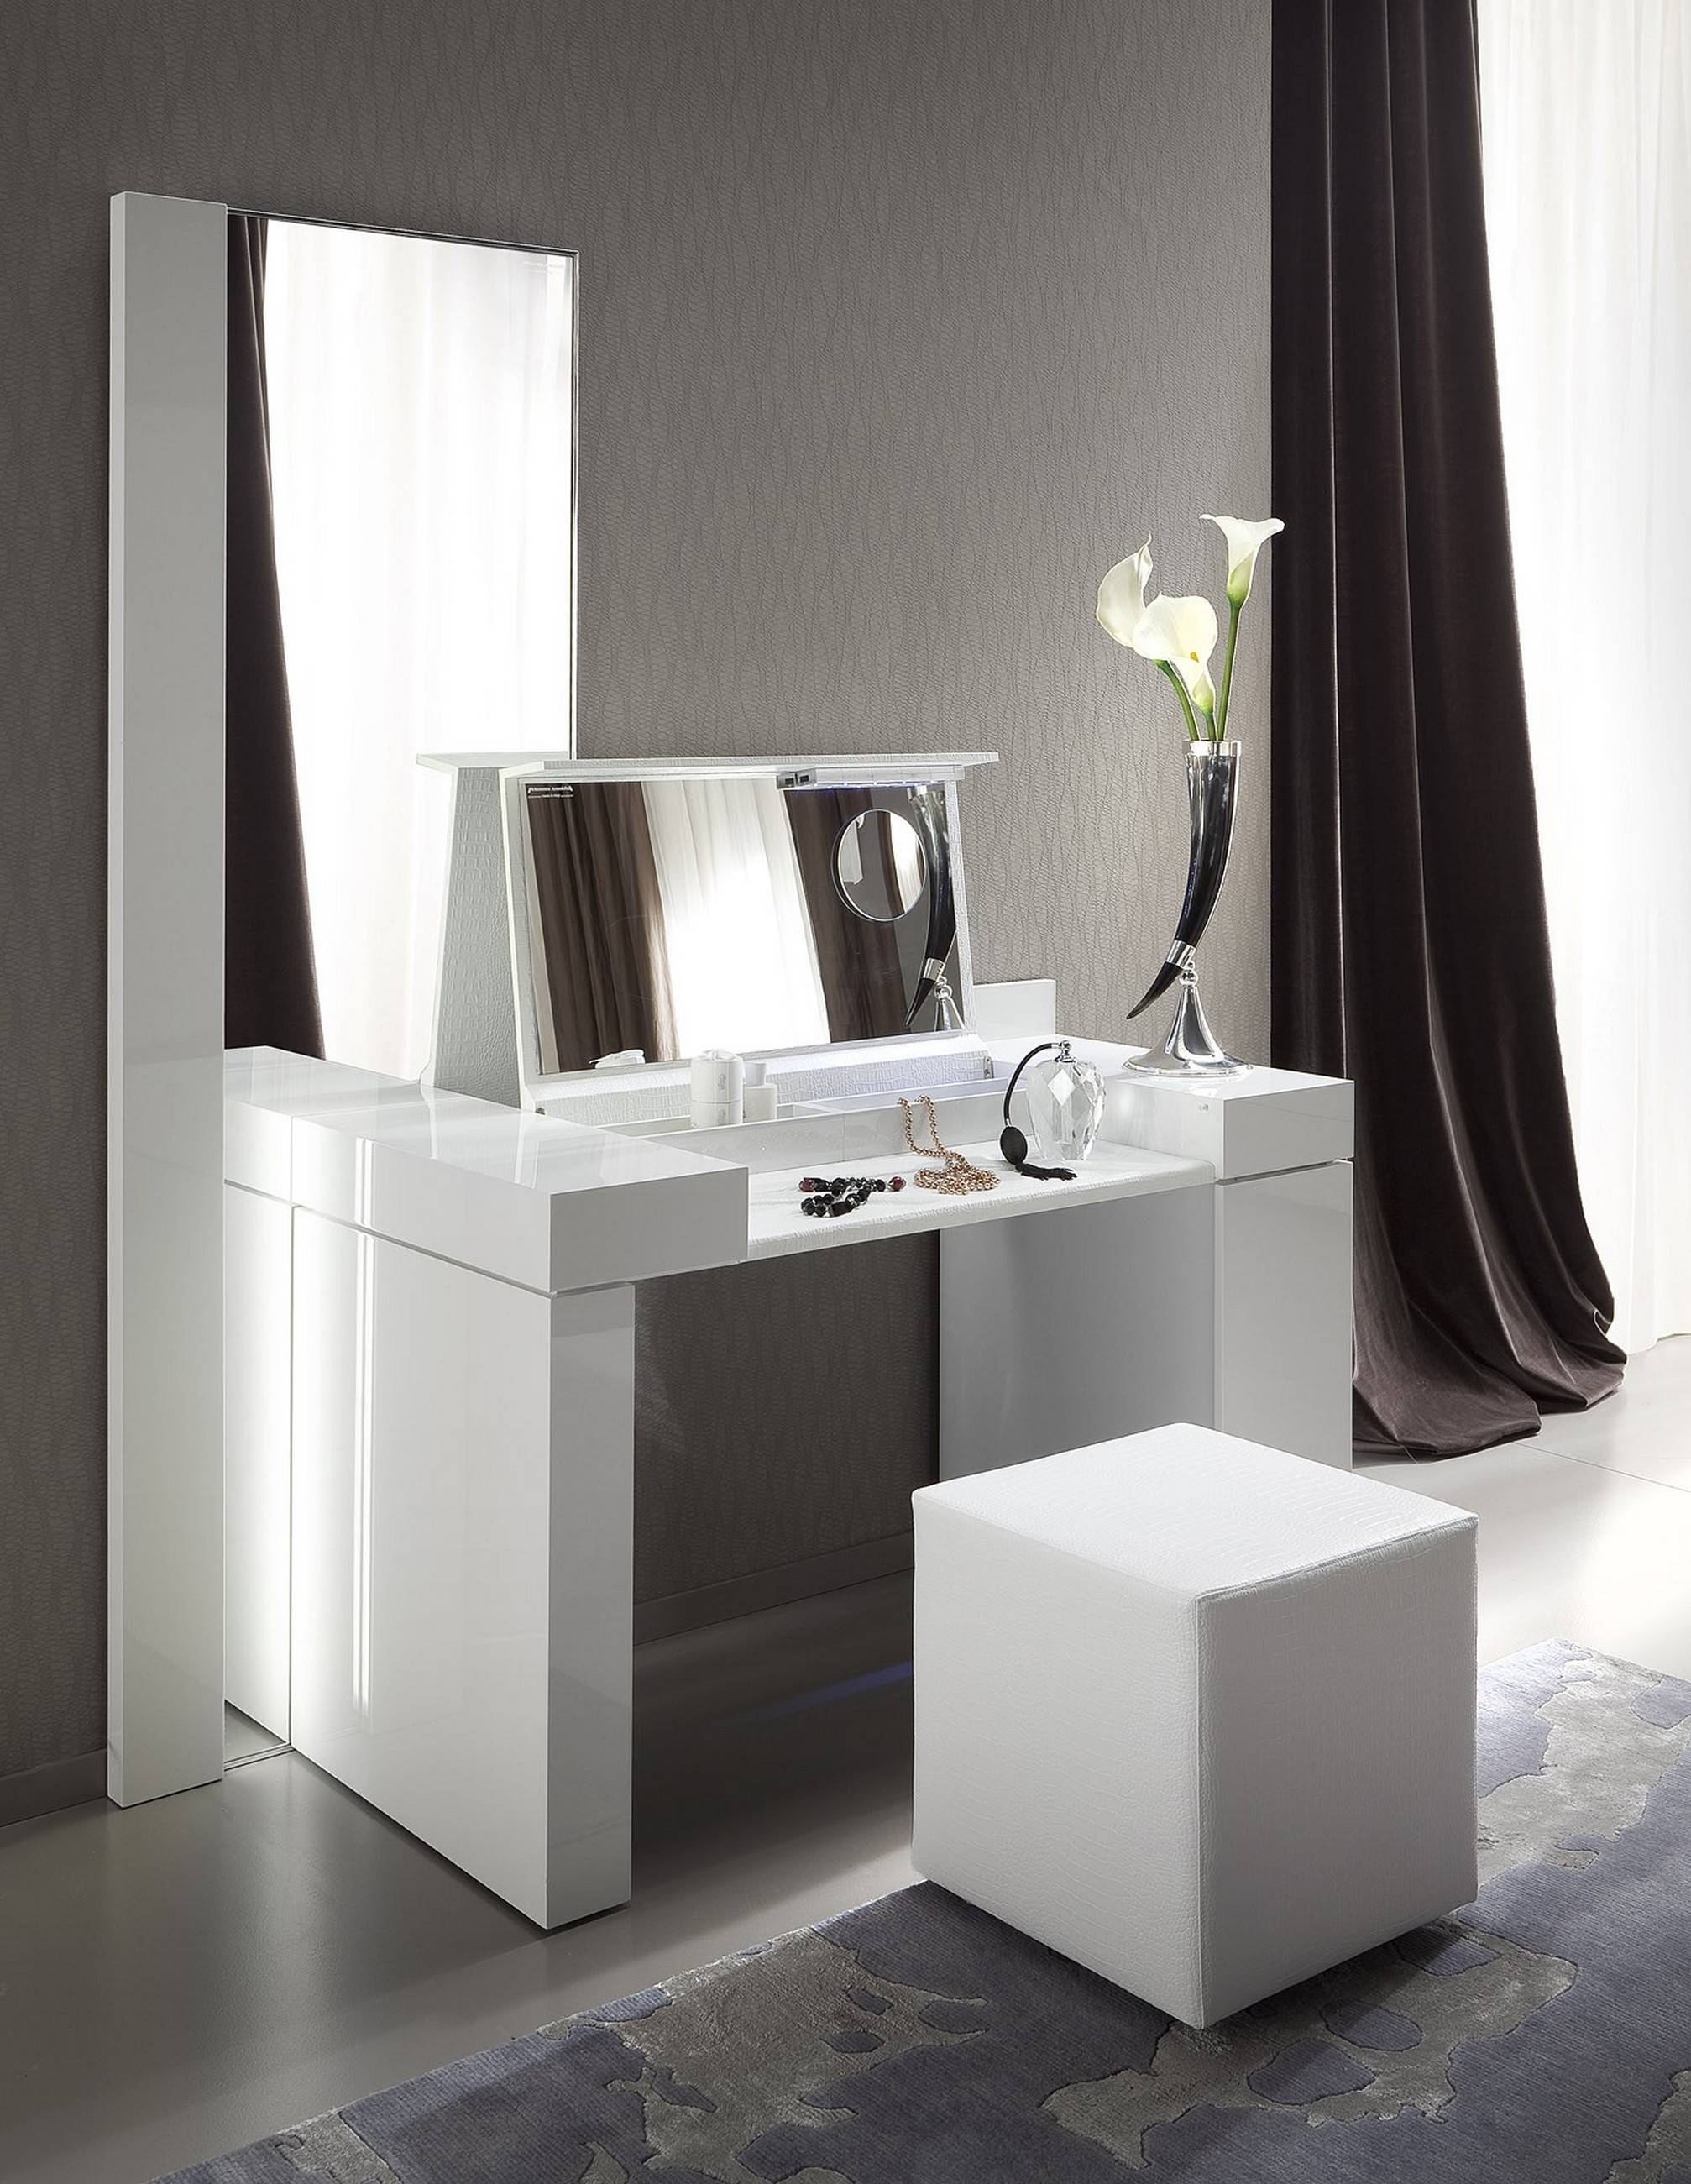 Seating - Heathertique | Creative Vanity Decoration within Contemporary Dressing Table Mirrors (Image 24 of 25)